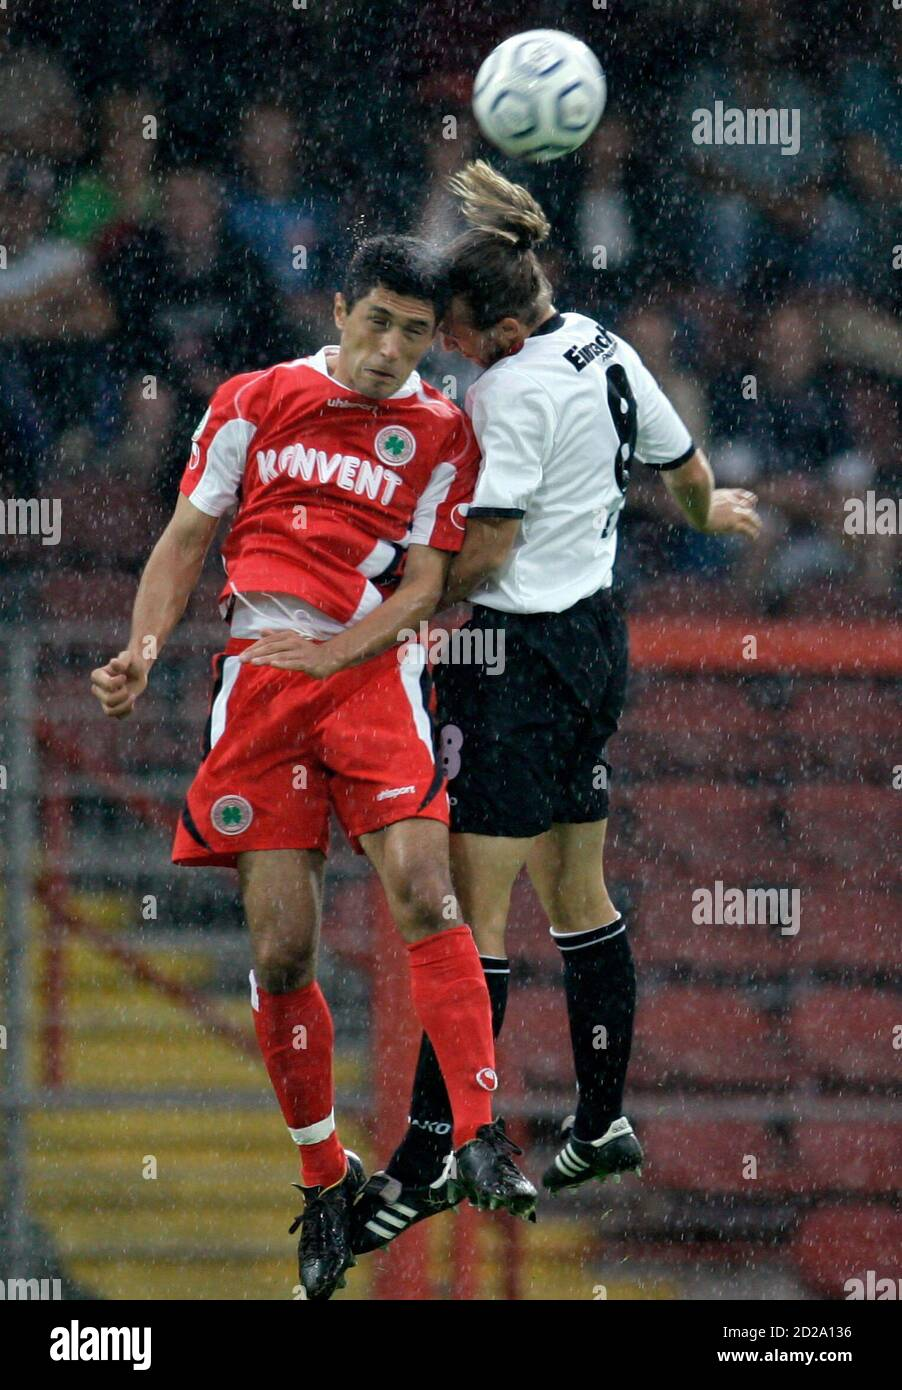 Rot Weiss Oberhausen S Ali Sirin And Eintracht Frankfurt S Lexa Jump For Ball During German Soccer Cup First Round Match In Oberhausen Germany Rot Weiss Oberhausen S Mehmet Ali Sirin L And Eintracht Frankfurt S Stefan Lexa